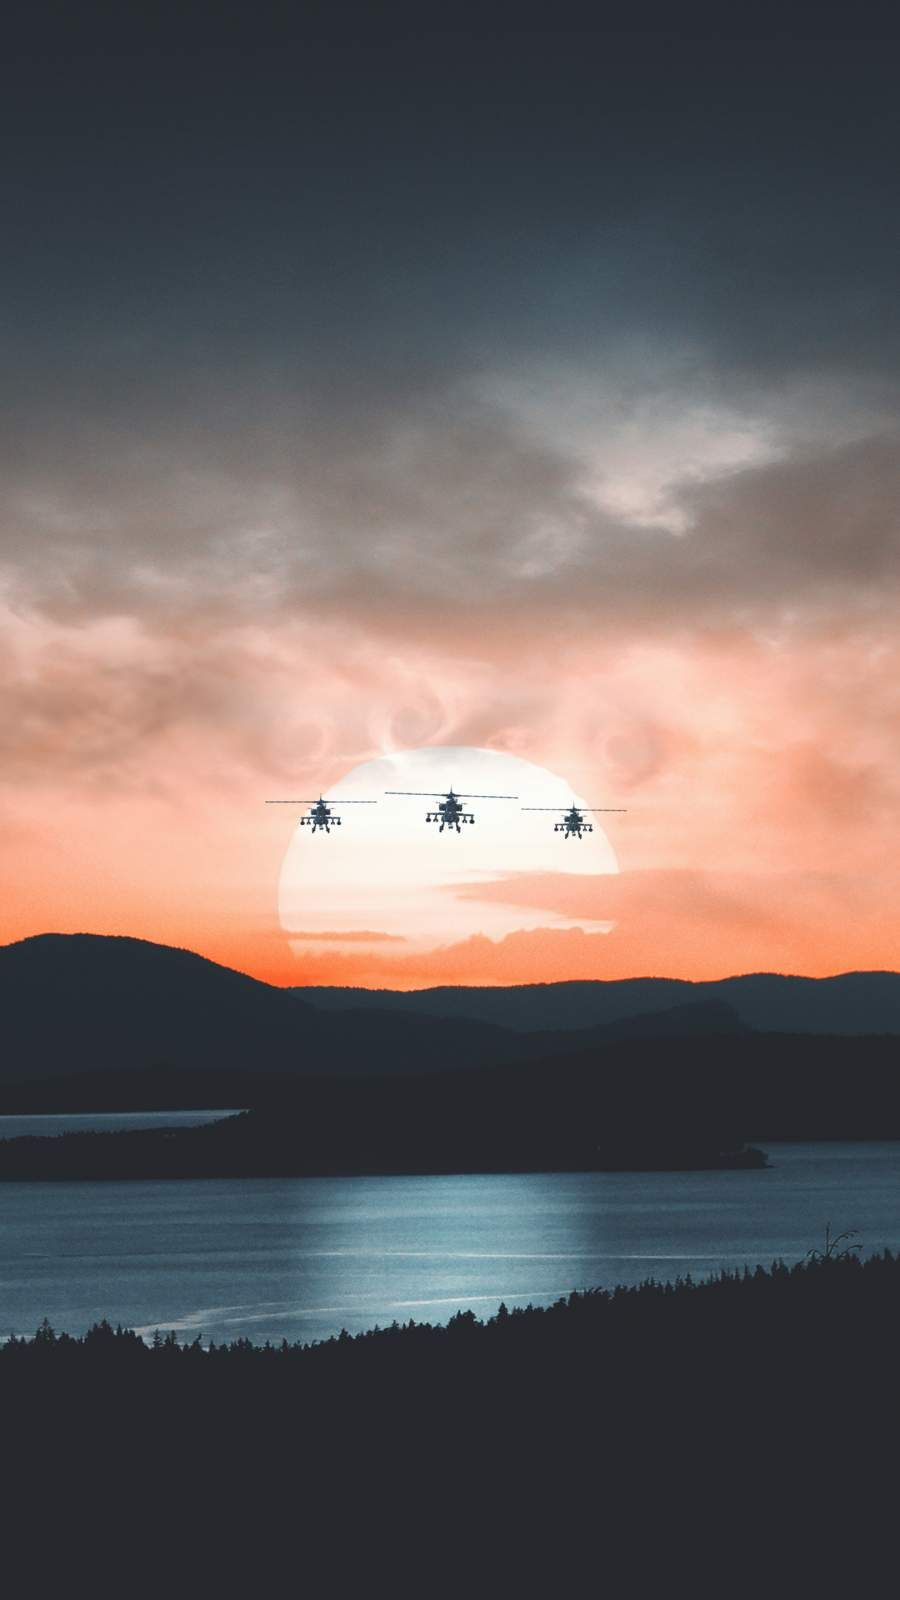 Apache Helicopter Trio Iphone Wallpaper Iphone Wallpaper Army Wallpaper Marvel Wallpaper